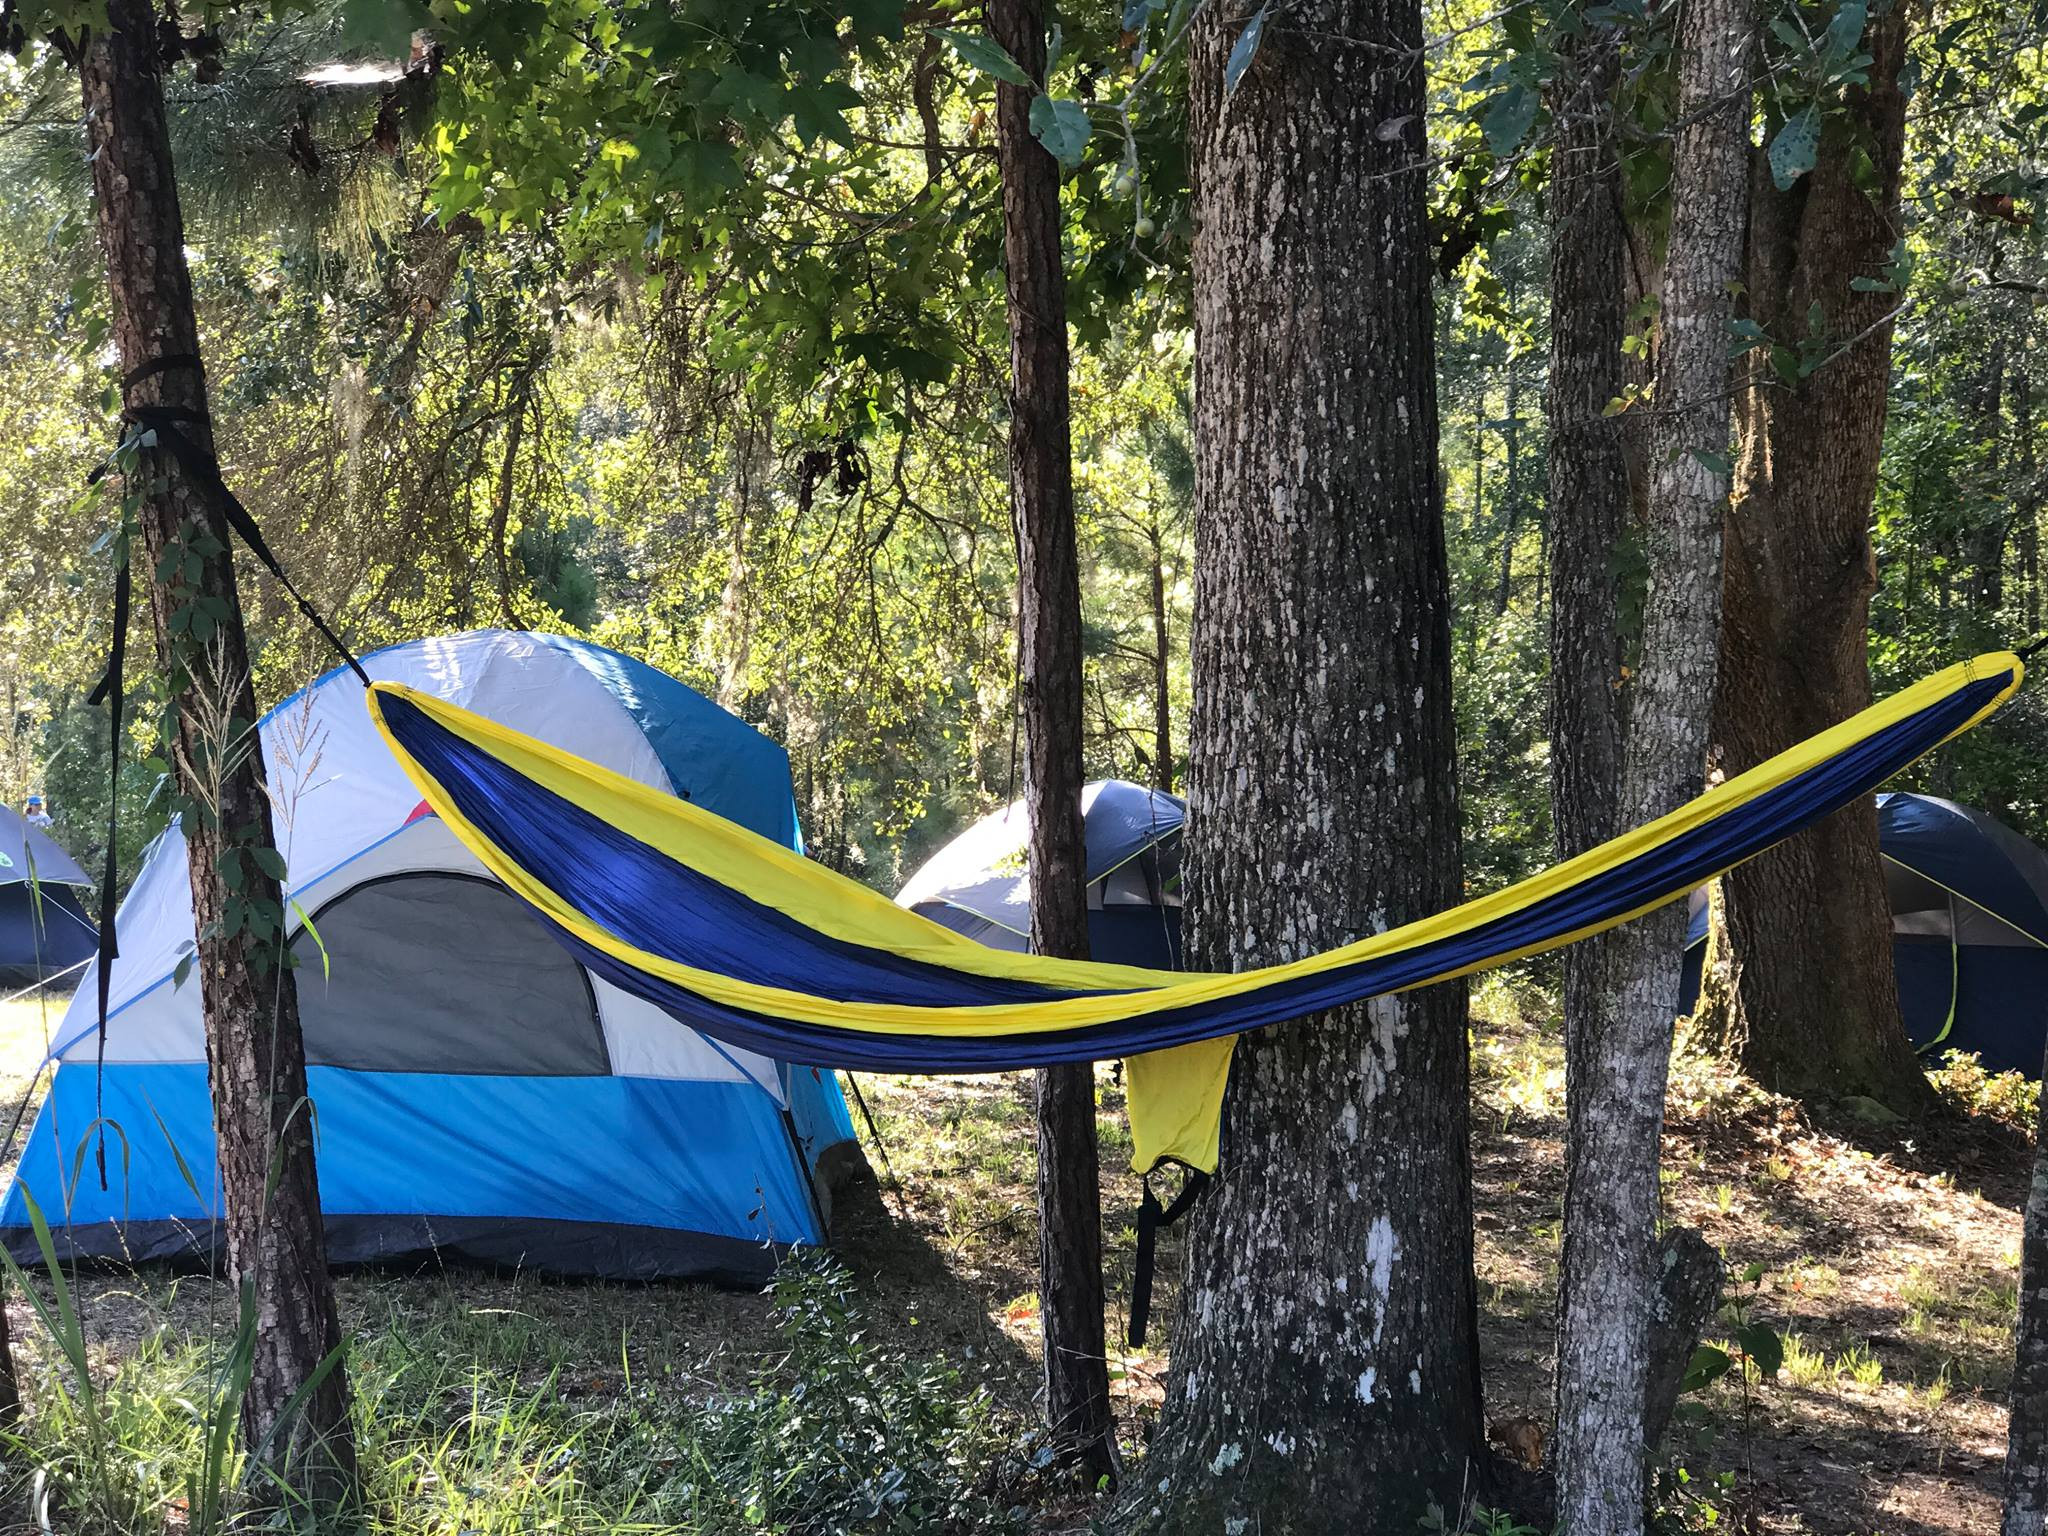 Campsites - Unplug & reconnect with nature on the Grounds!-$55 per night-Includes full use of the bathhouse, trails, ponds & private river dock-Option to camp by river or homestead-Need a tent? We have rentals available!FIND US ON AIRBNB OR HIPCAMP TO BOOK!